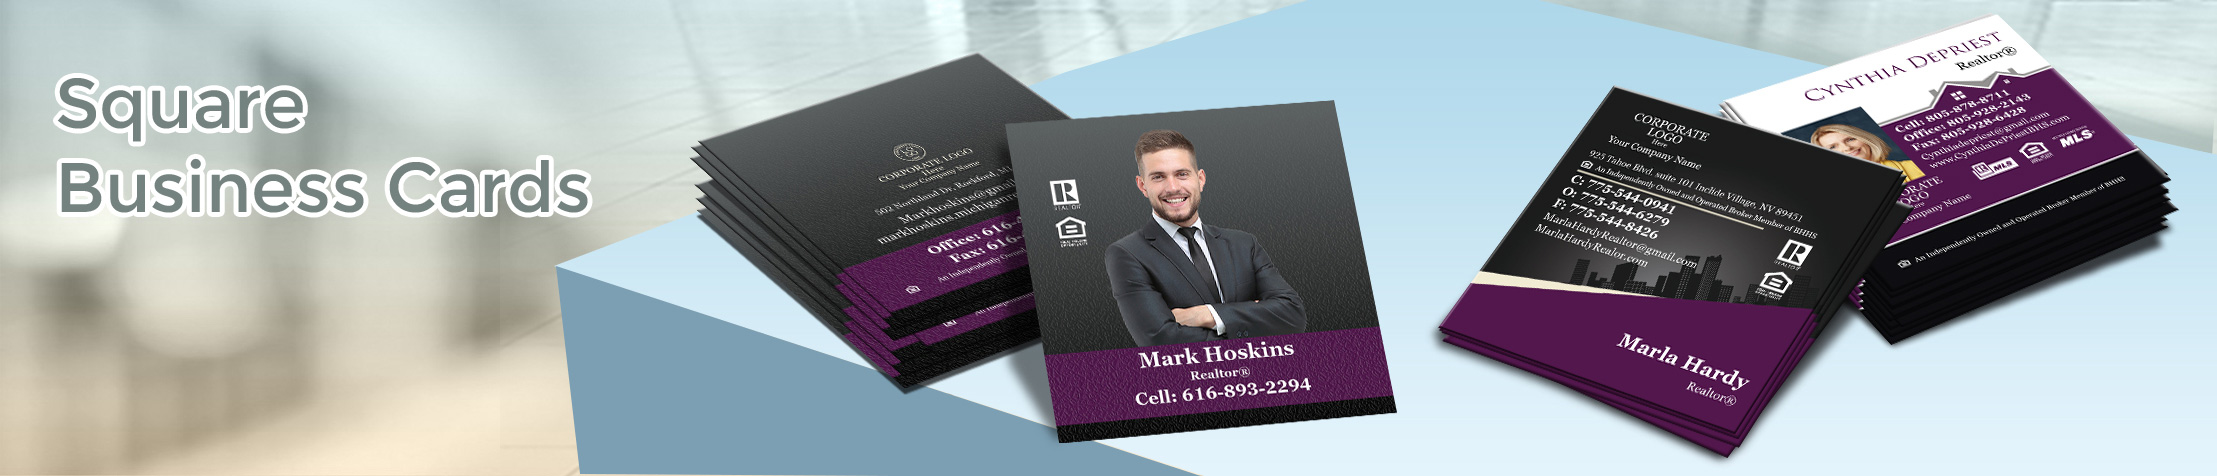 Berkshire Hathaway Real Estate Square Business Cards - Berkshire Hathaway  - Modern, Unique Business Cards for Realtors with a Glossy or Matte Finish | BestPrintBuy.com